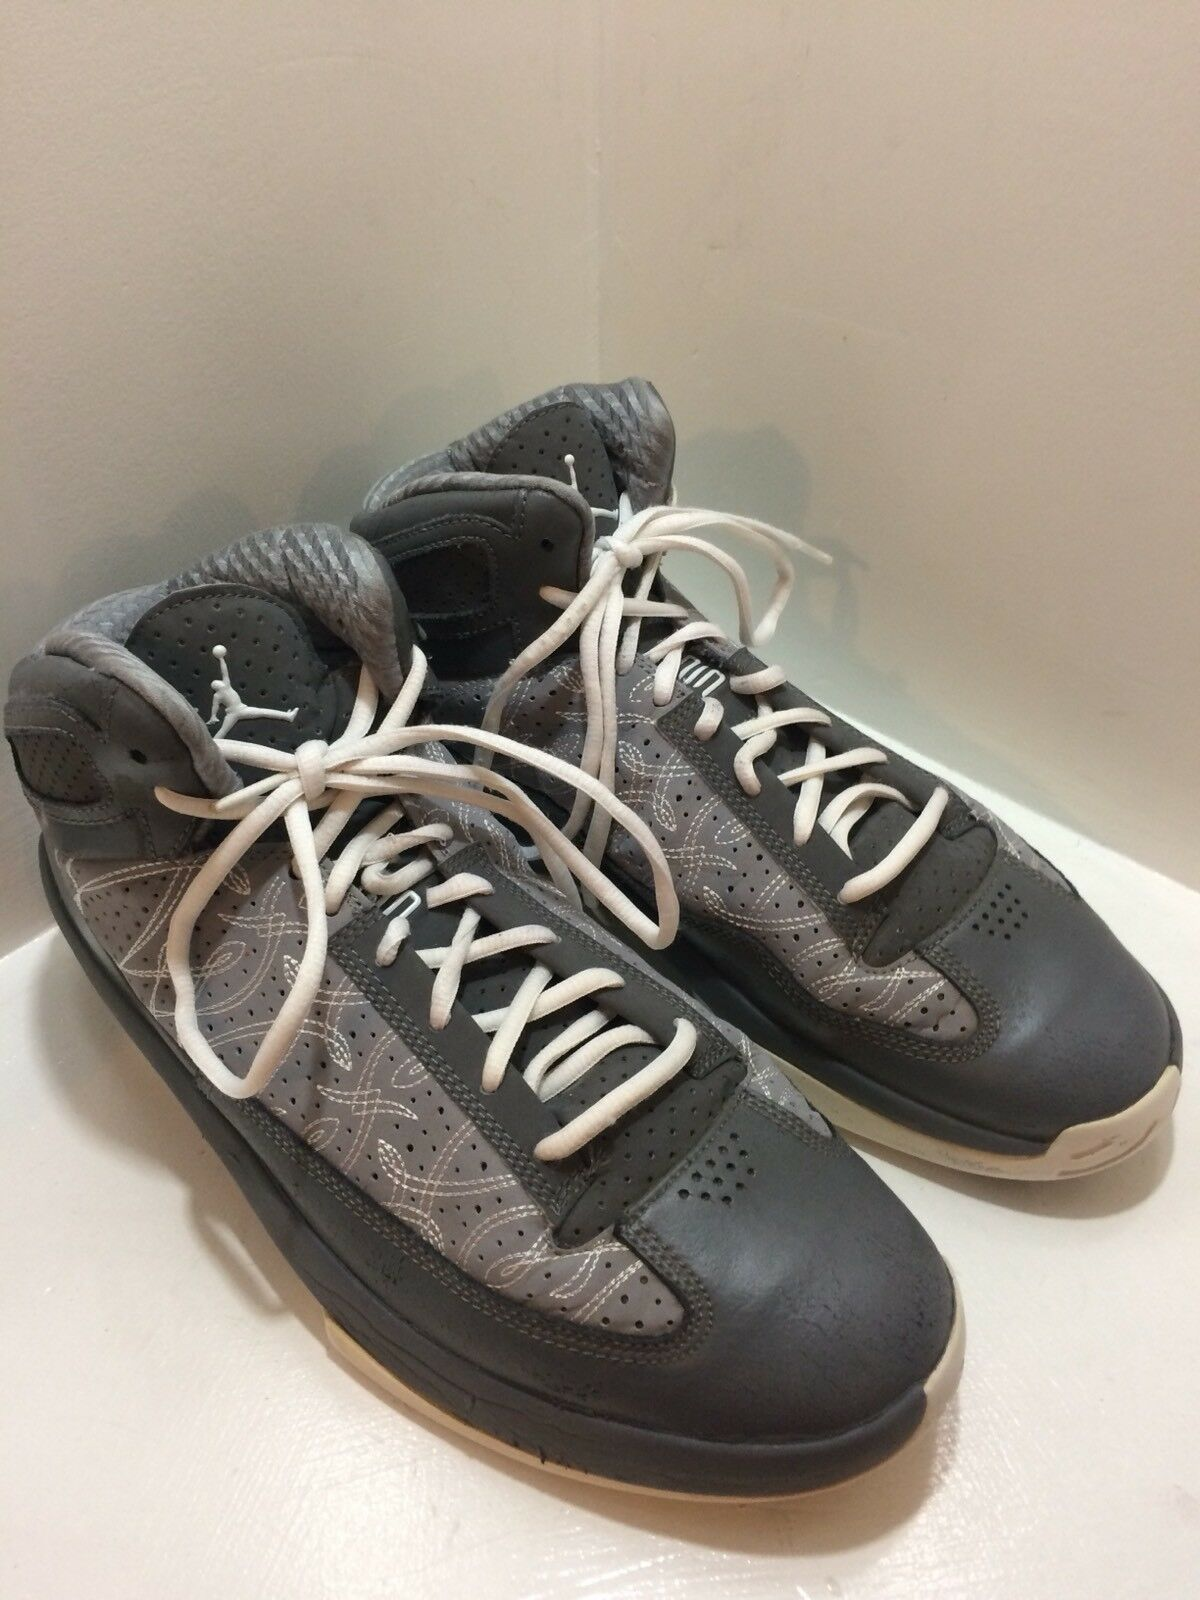 NIKE AIR JORDAN ICONS Men's Gray White Basketball Sneakers 393852-010 Comfortable The most popular shoes for men and women